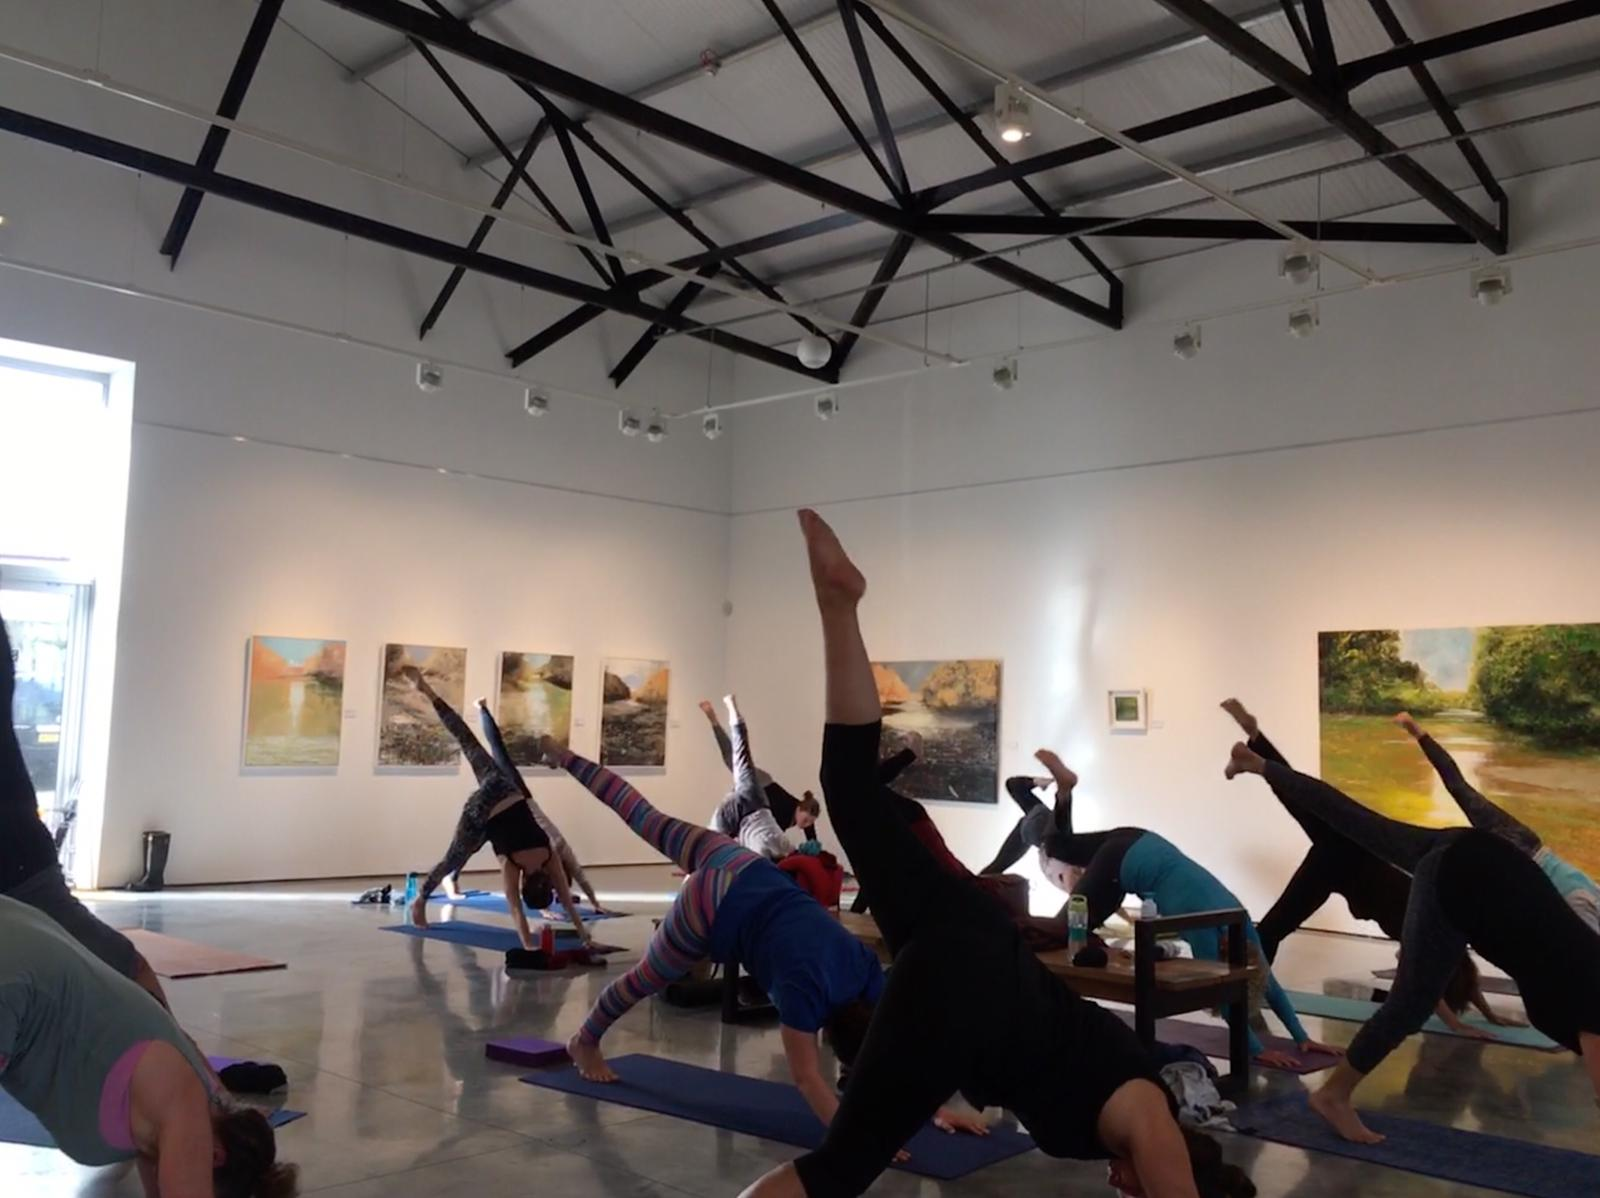 Charity Yoga in the Gallery